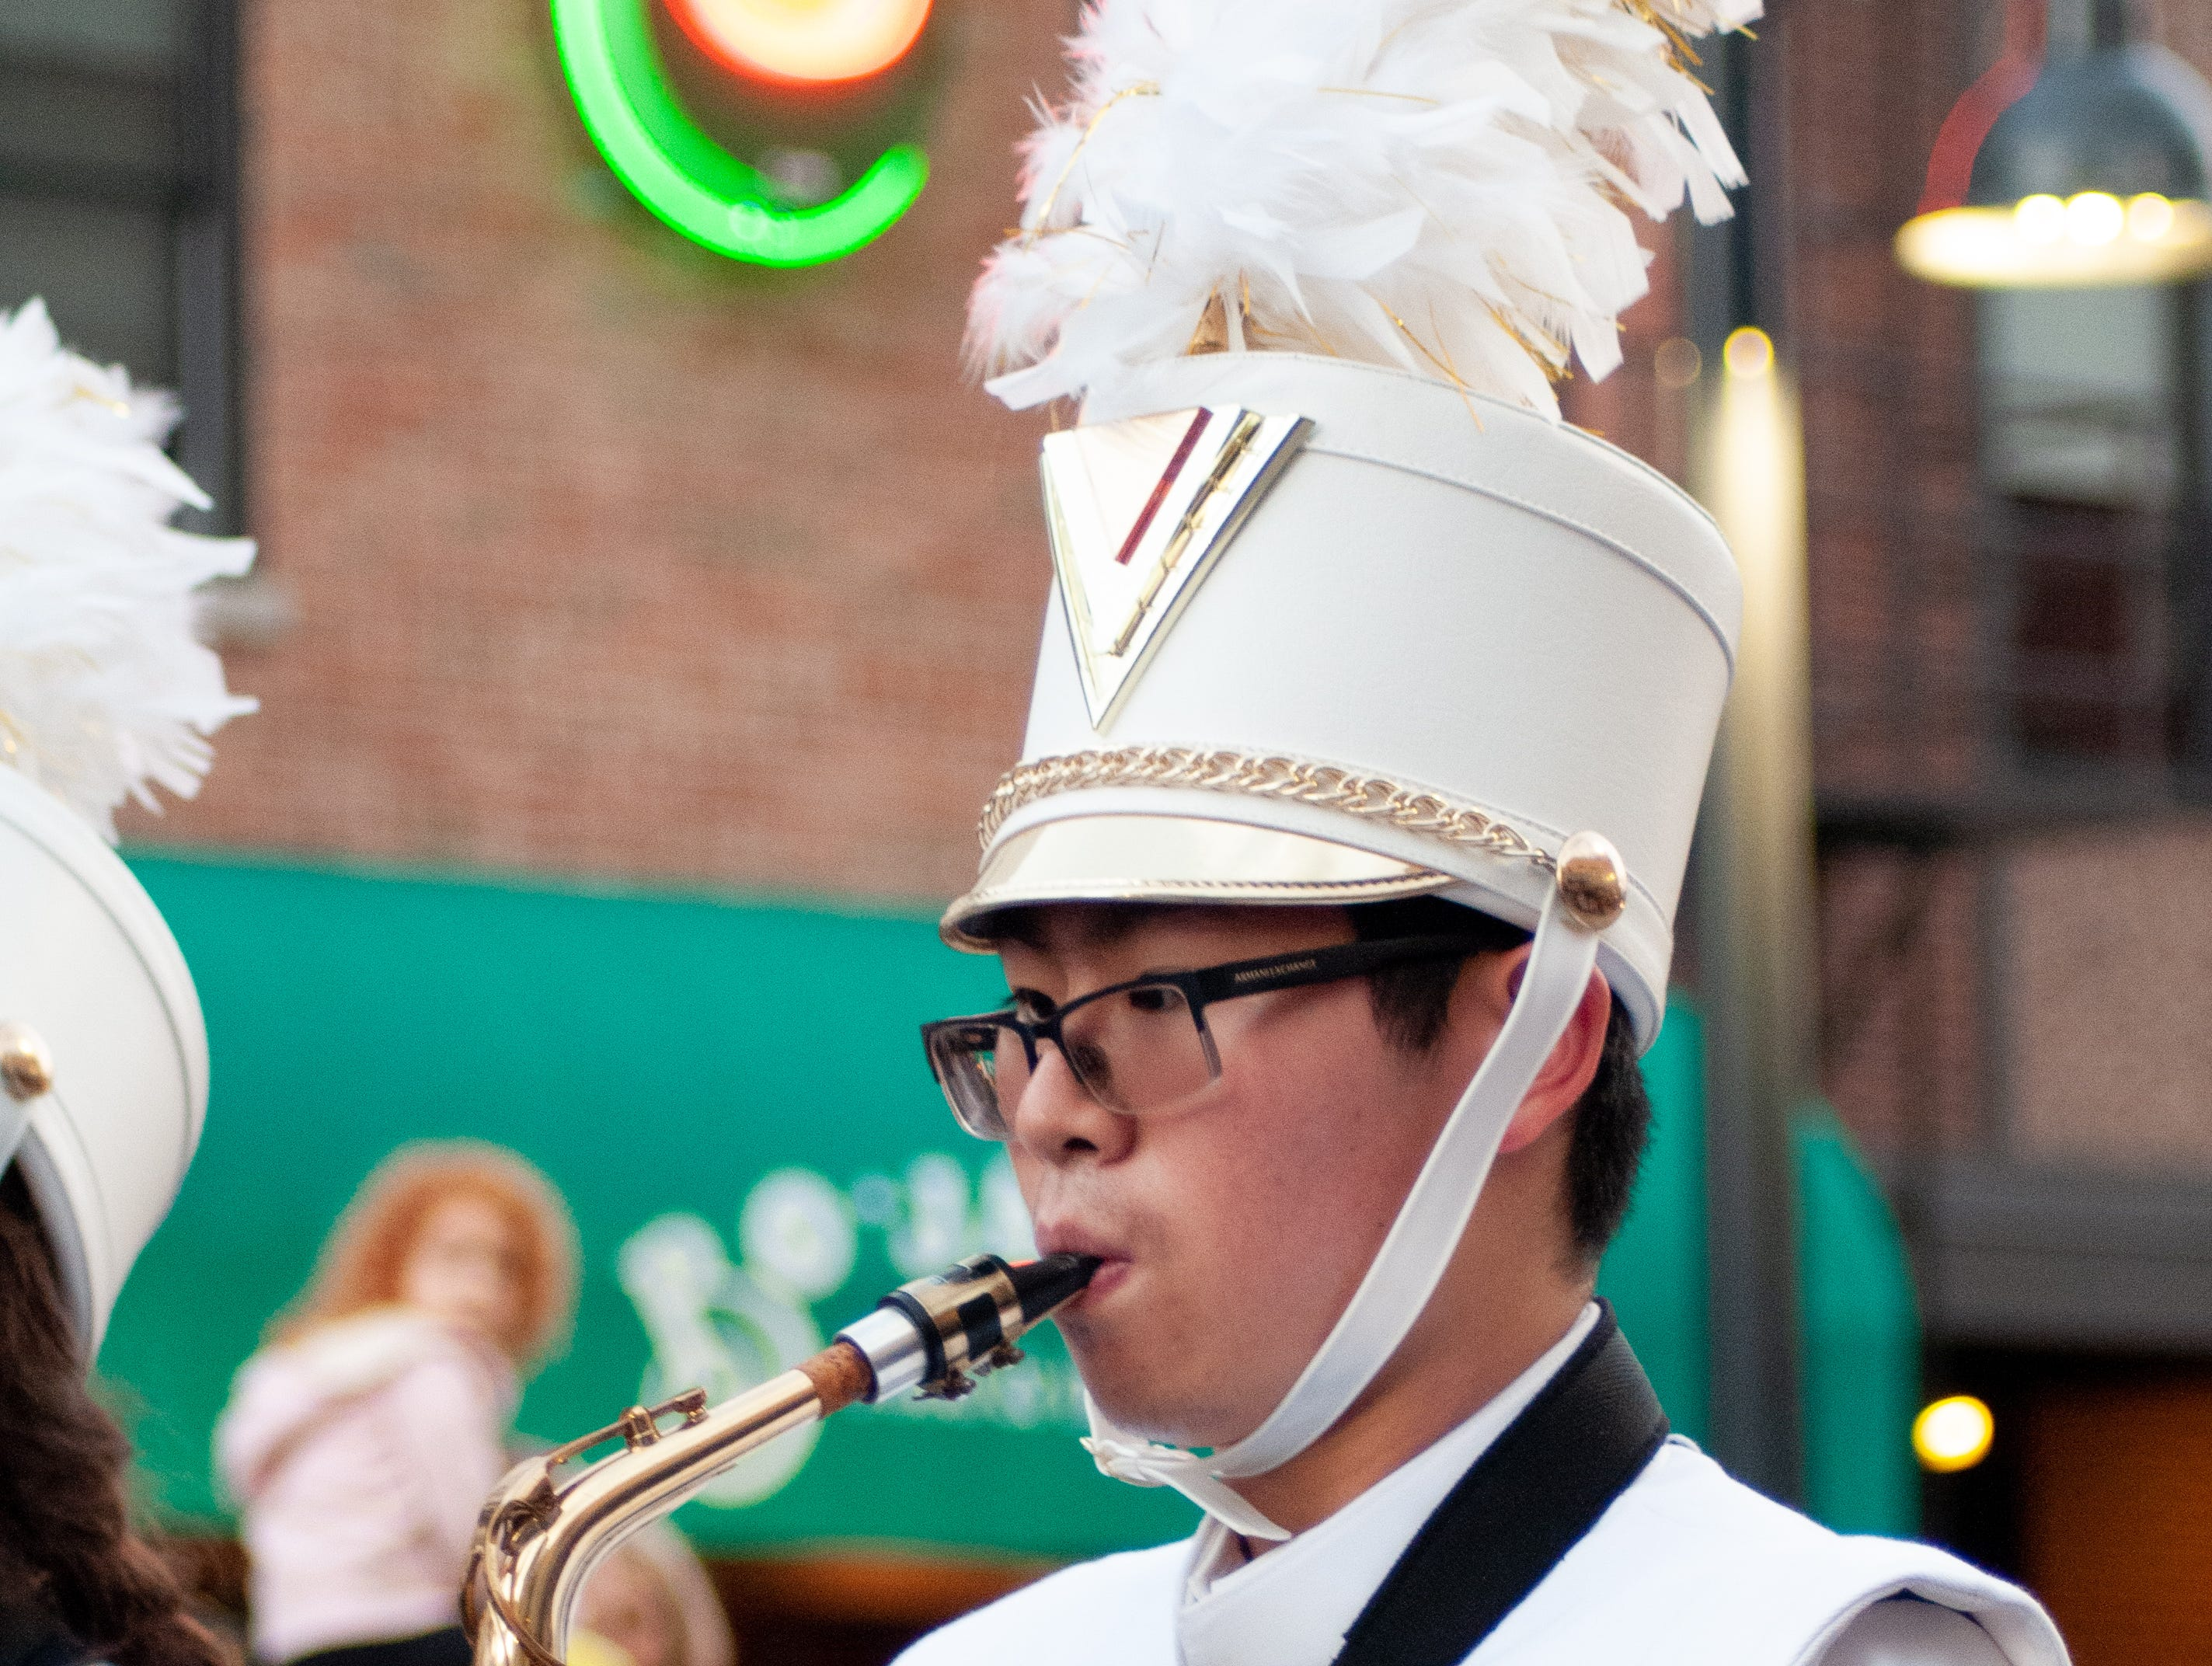 Yangtian Shangguan performs in the Iowa City West High Marching Band for the 2018 Homecoming parade, Friday, Oct. 19, 2018, in Iowa City.